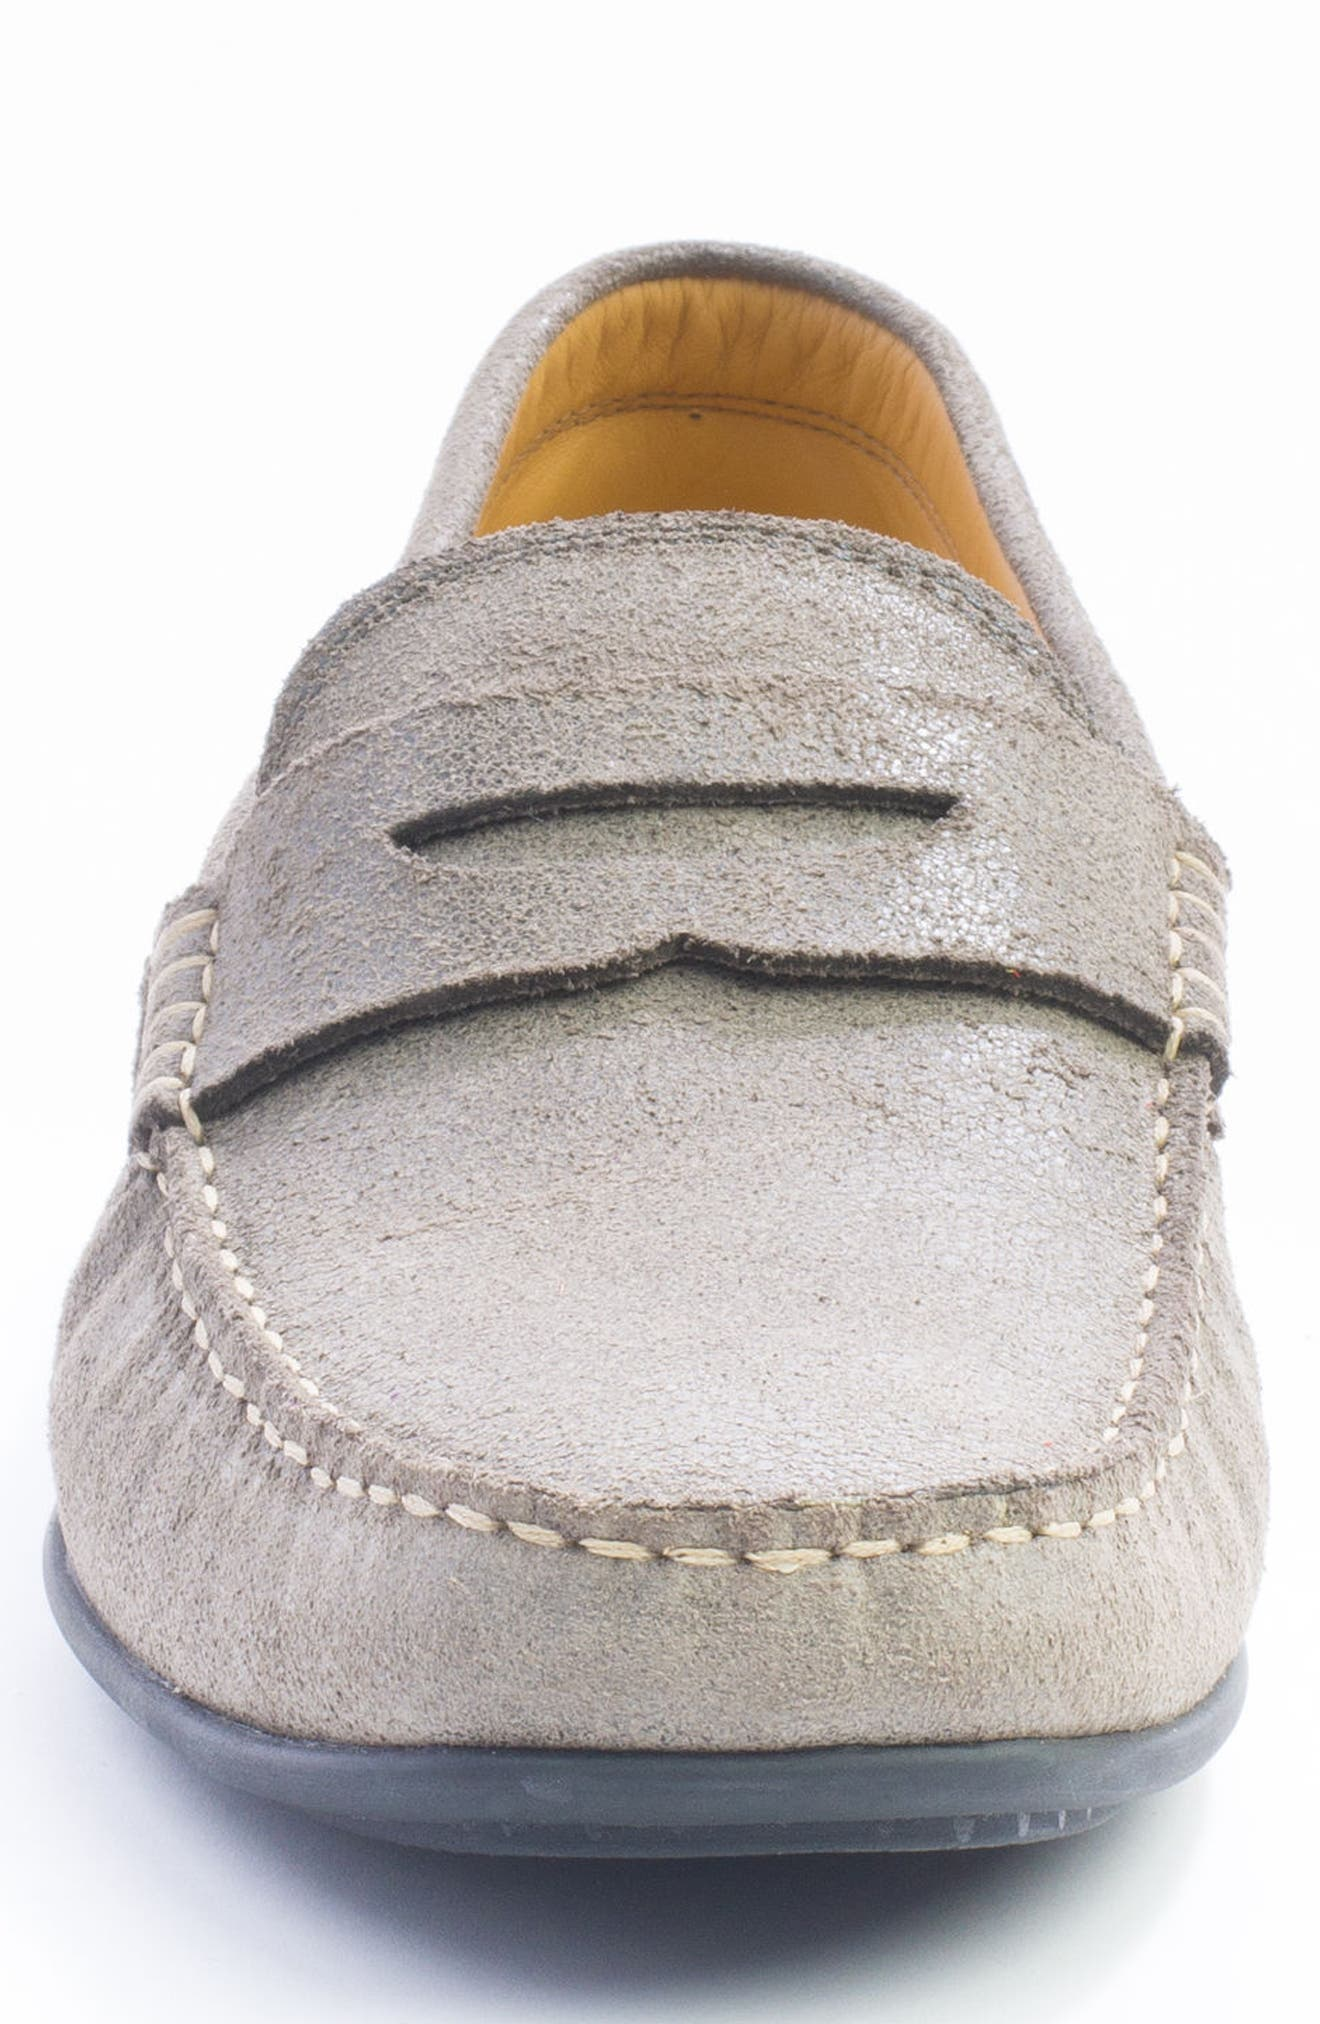 Barretts Penny Loafer,                             Alternate thumbnail 4, color,                             GREY